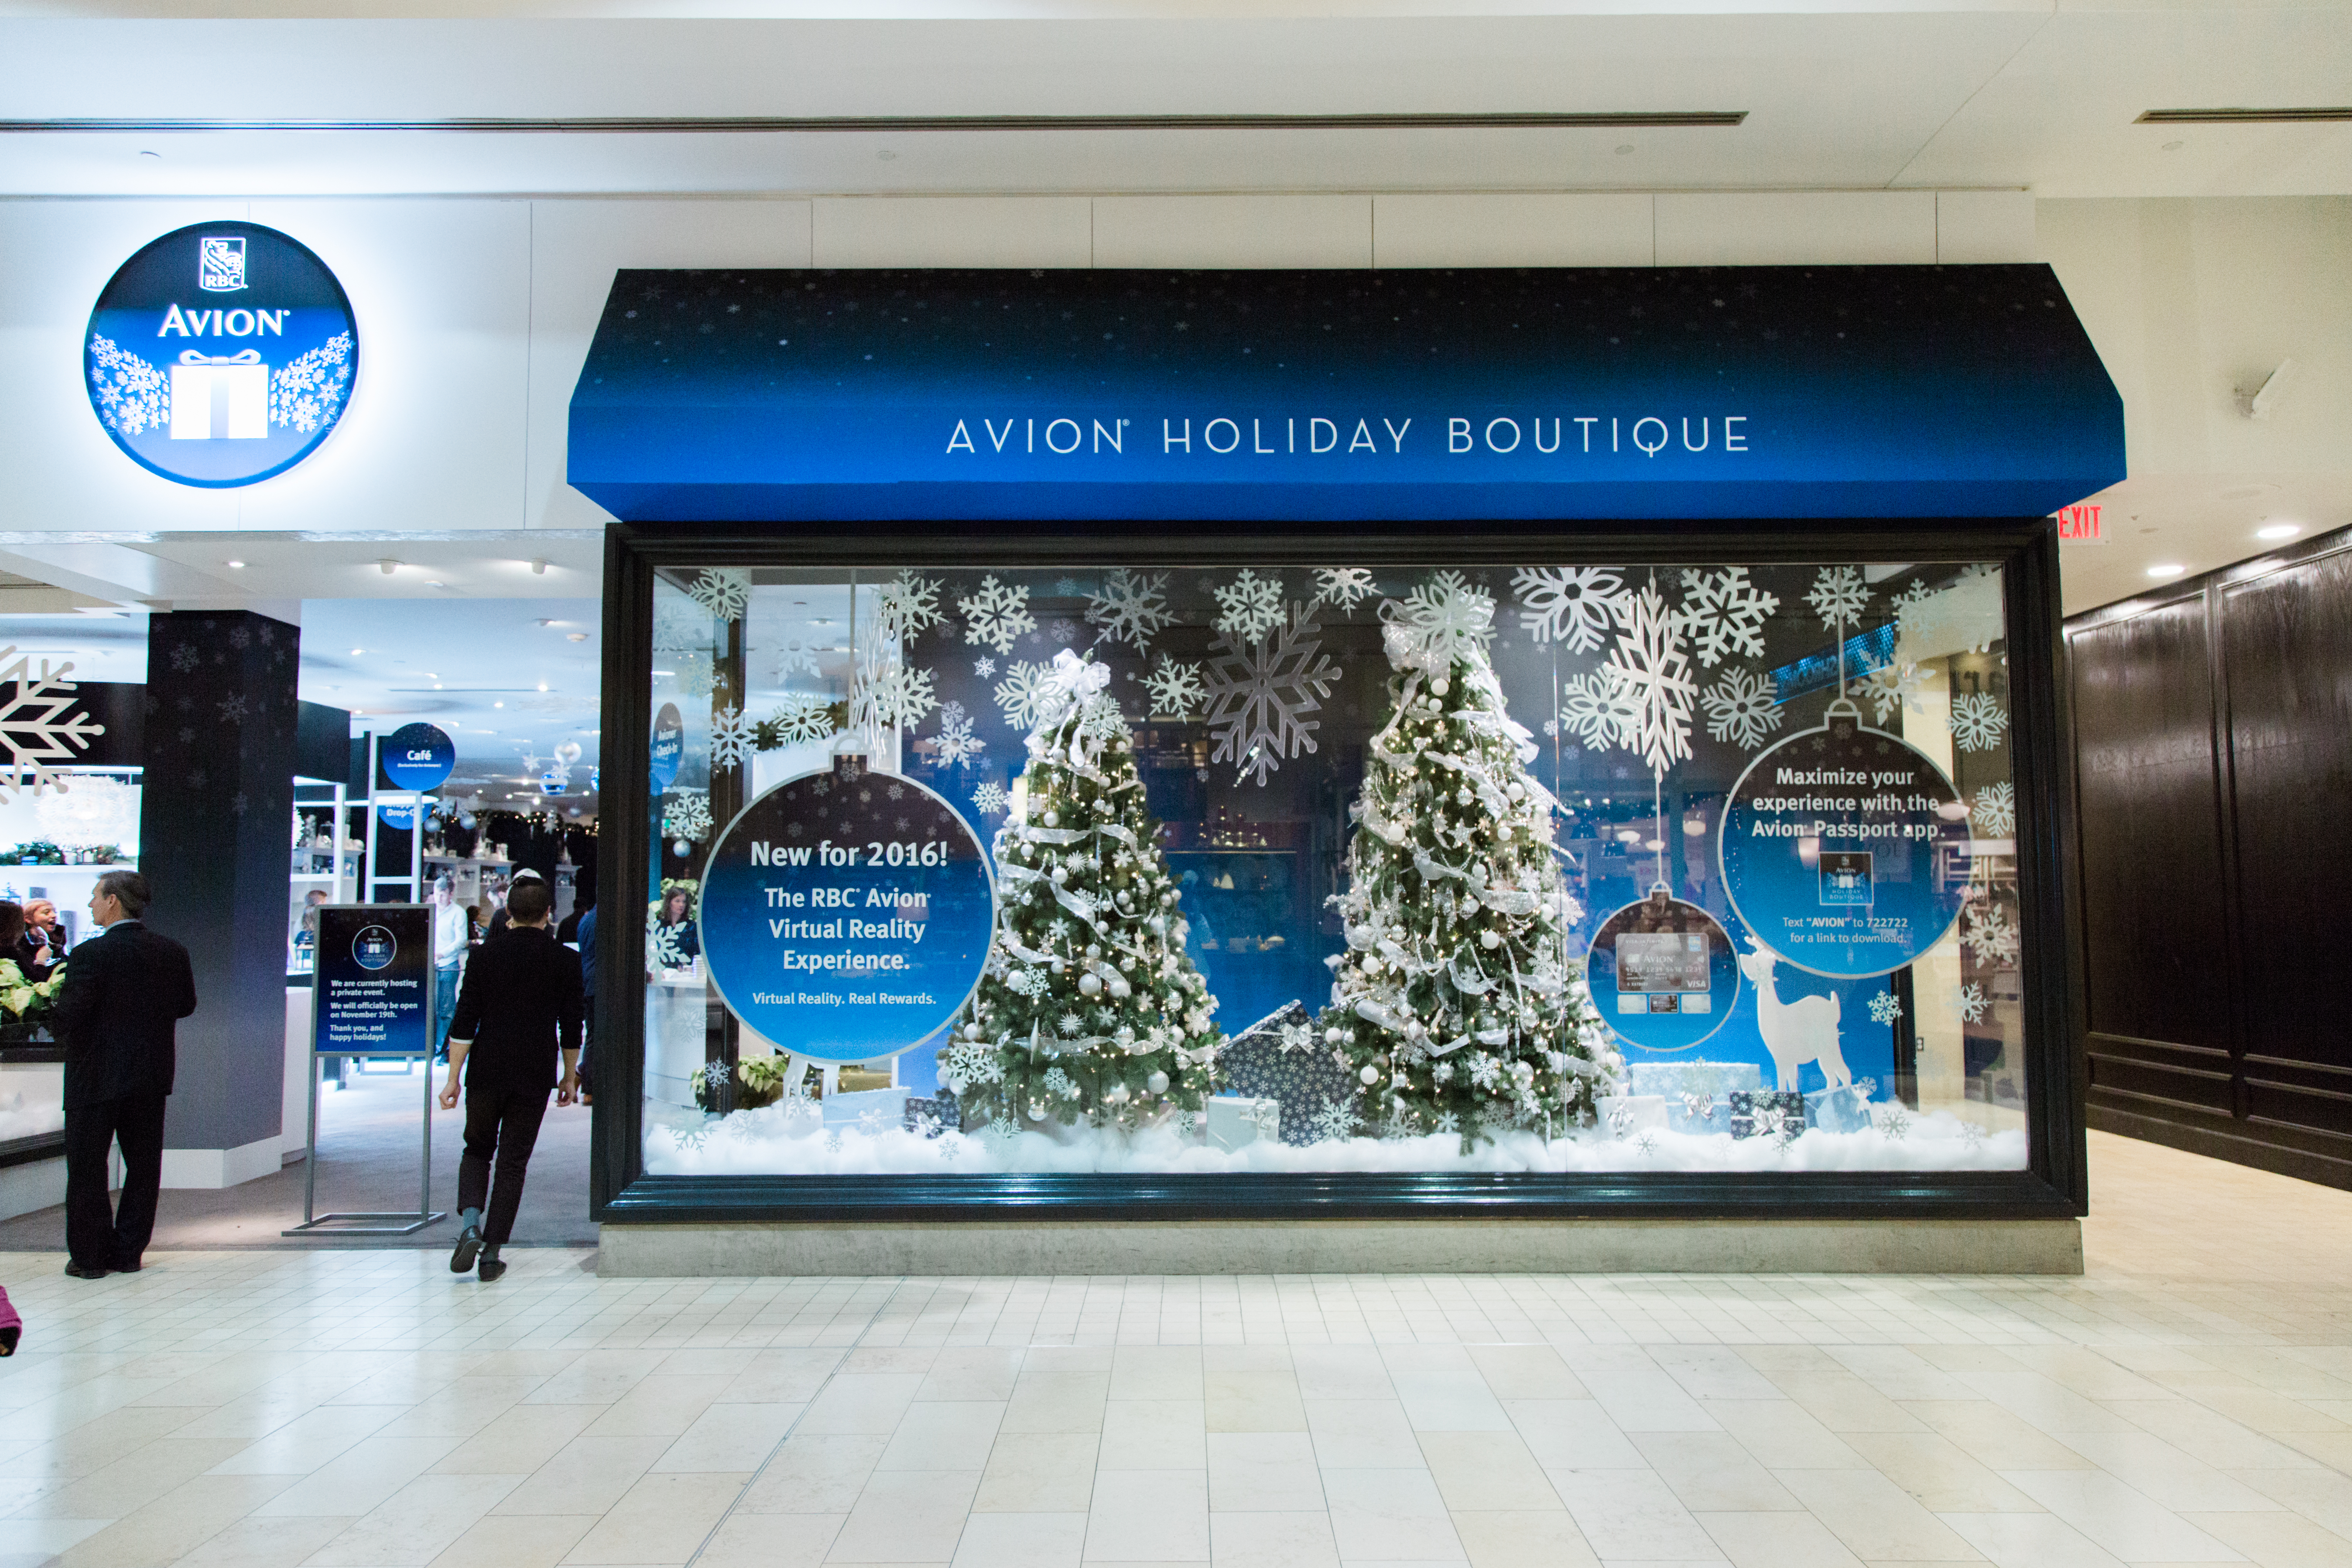 The Avion Holiday Boutique at Yorkdale Shopping Centre